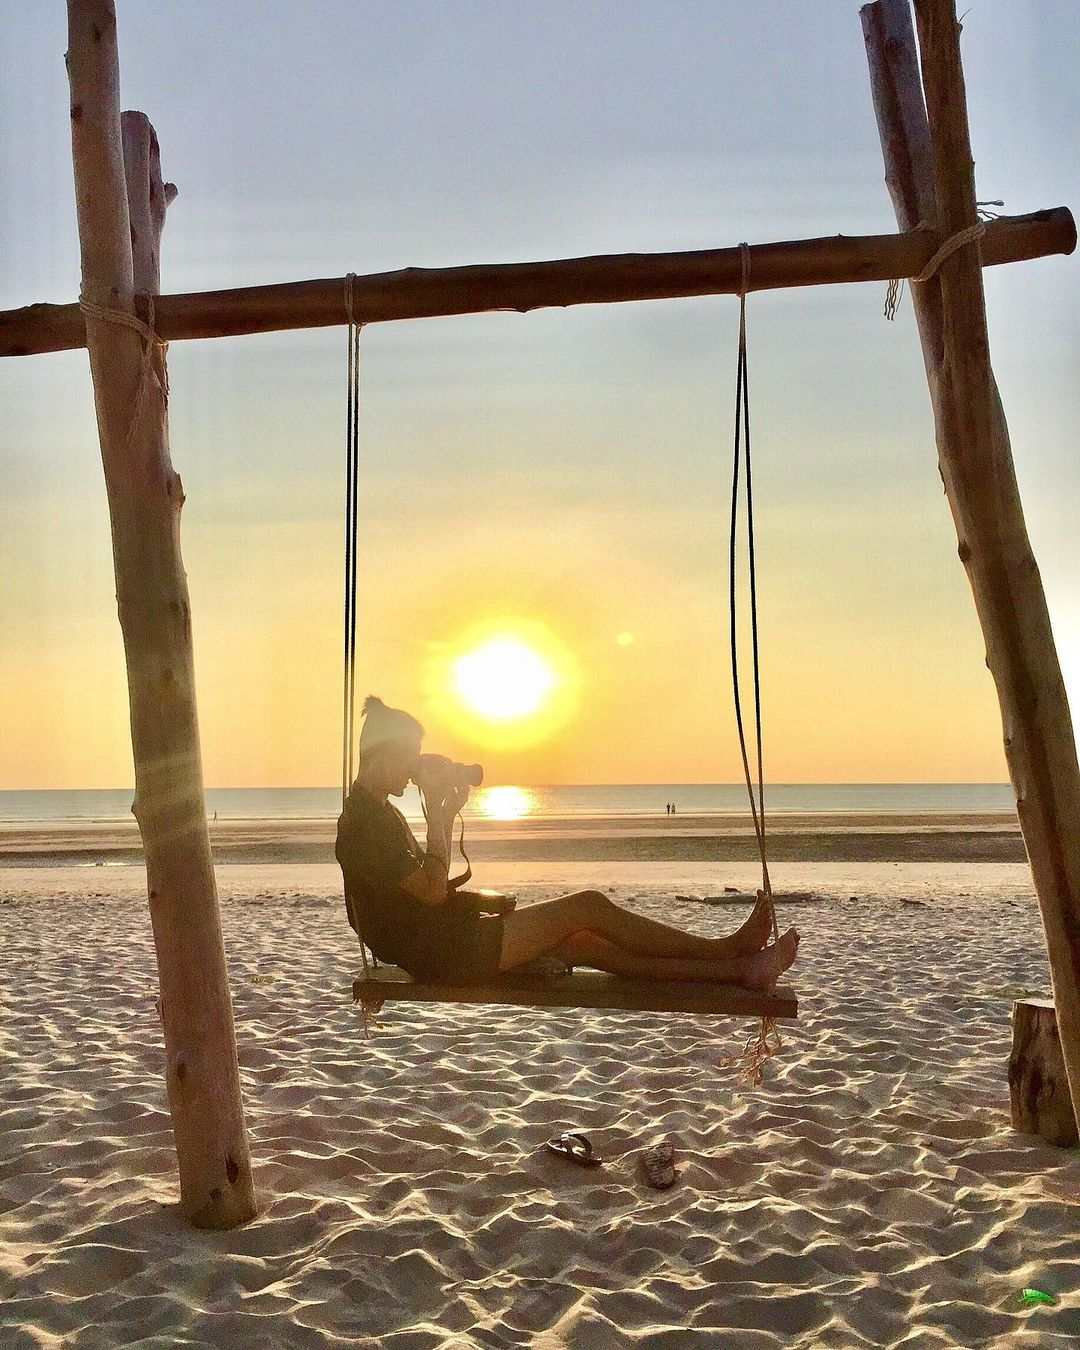 On a swing in the sun at Bang Niang Beach in Khao Lak